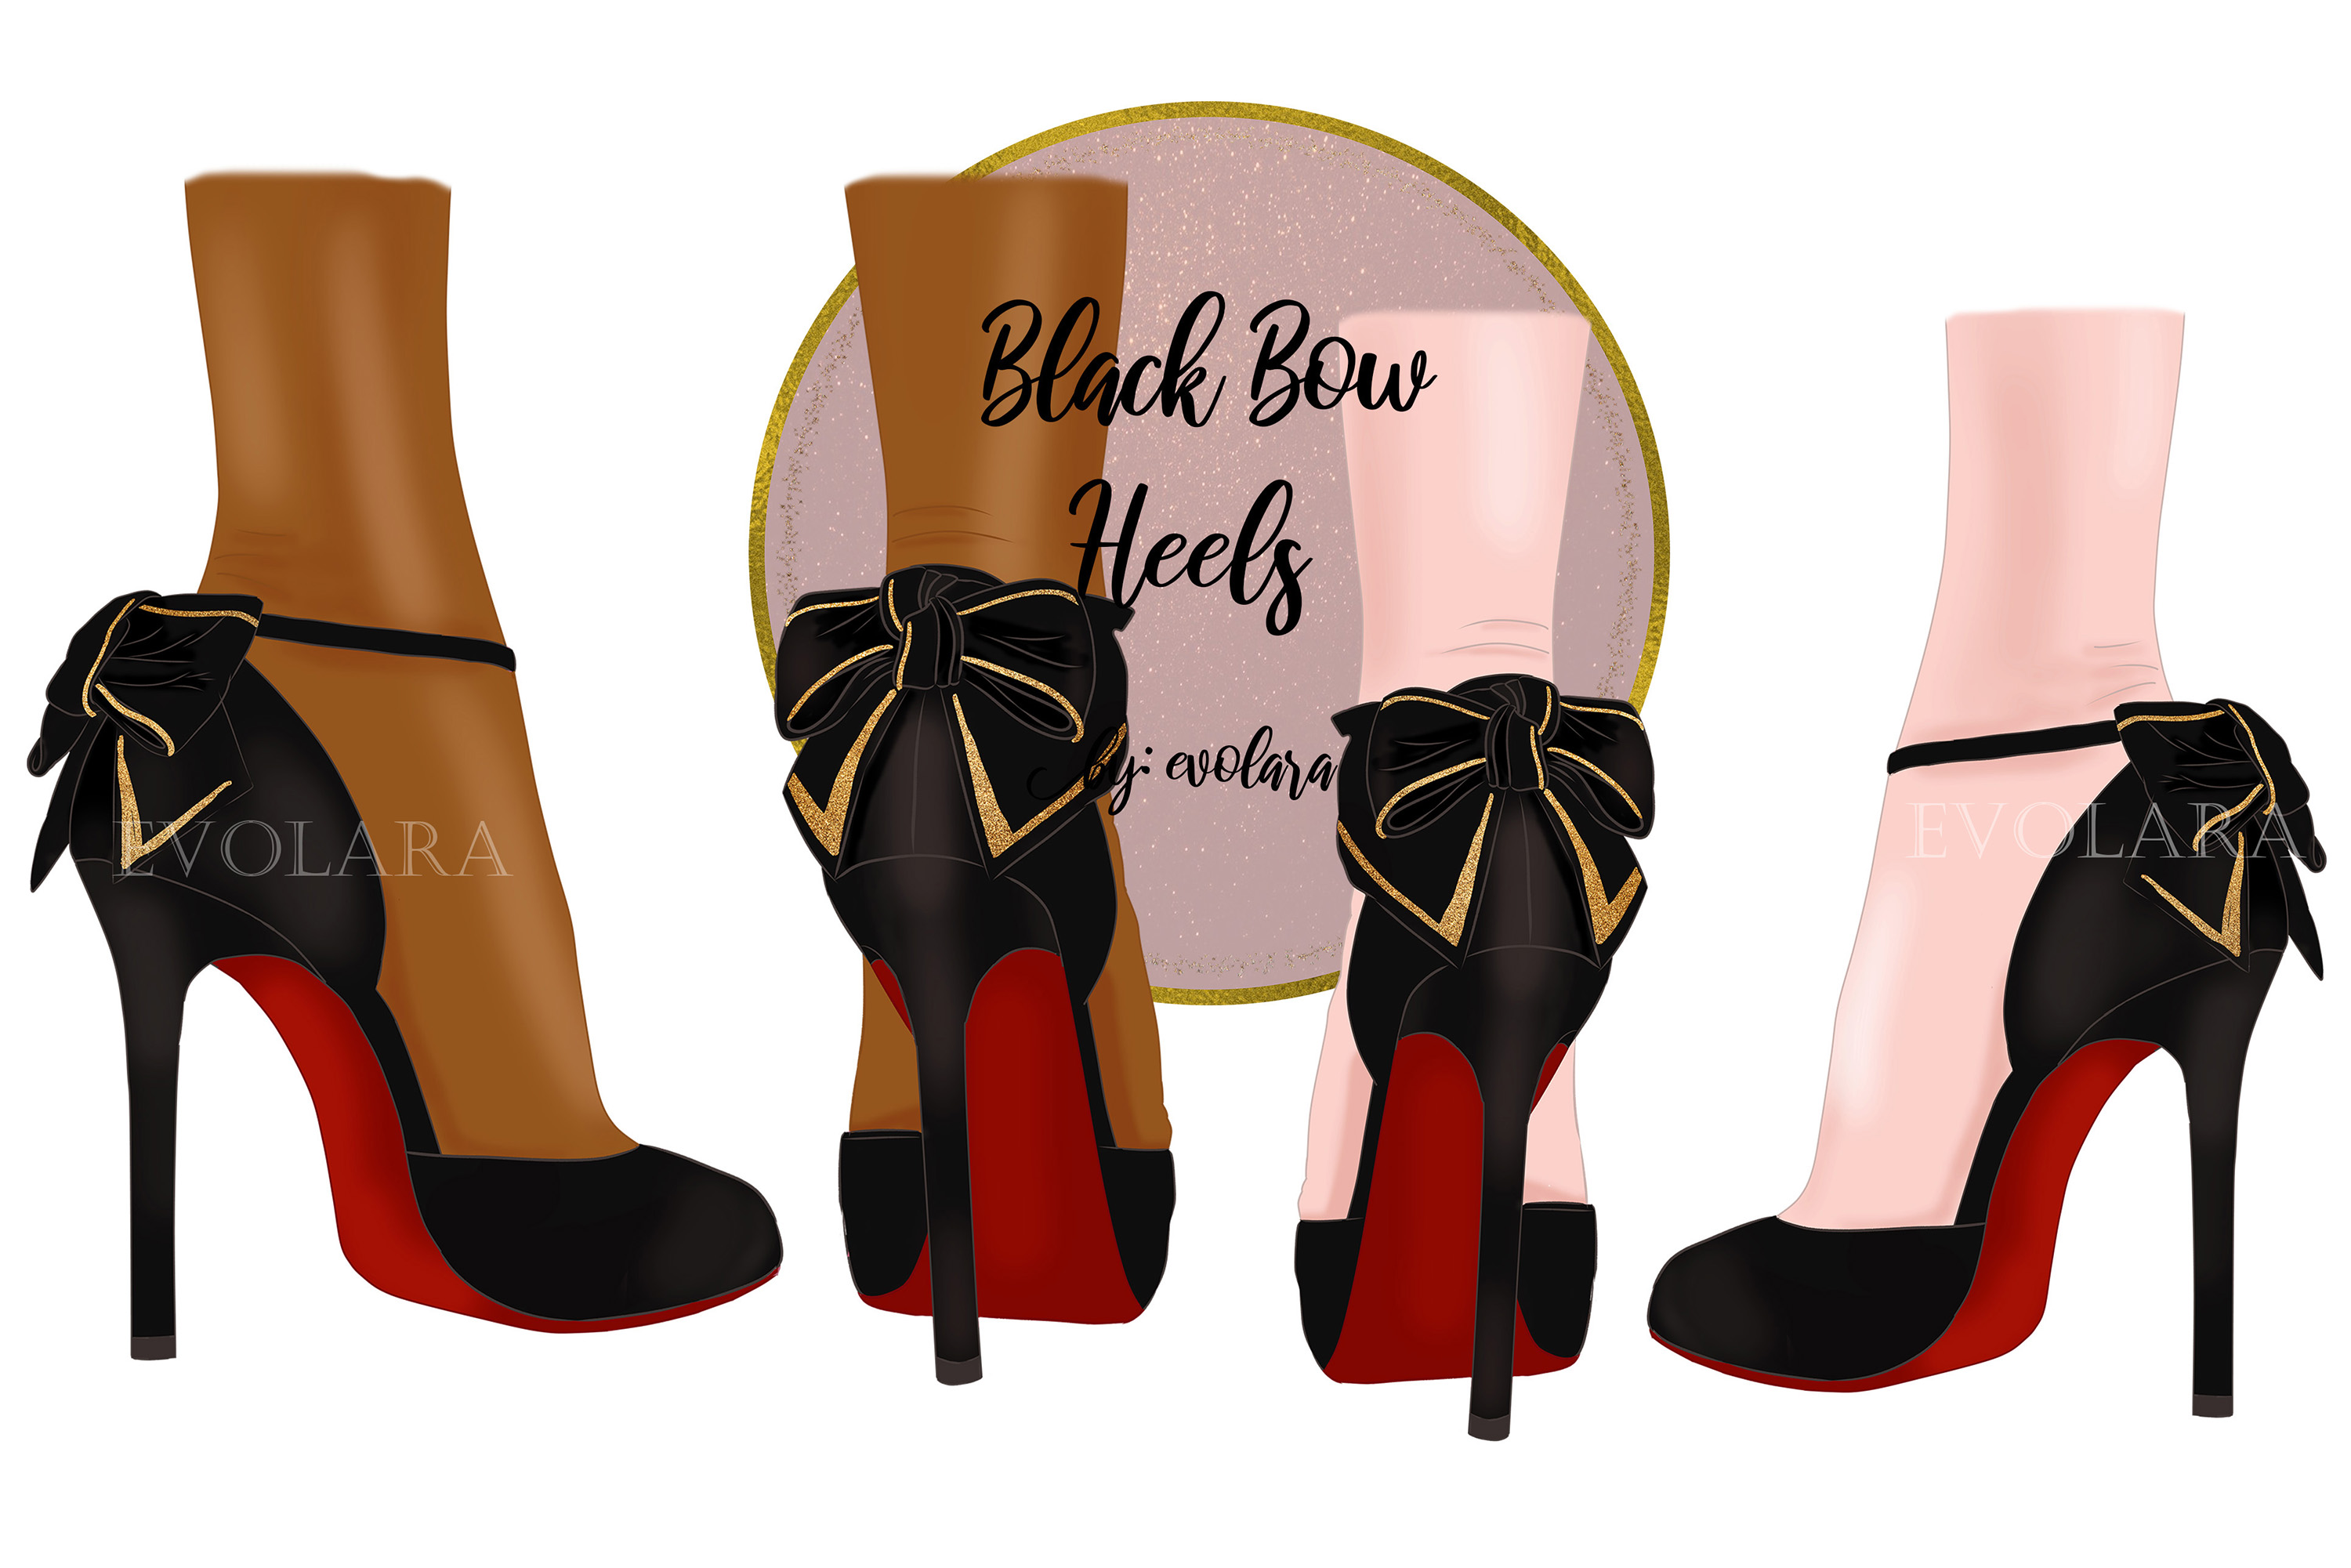 High Heel Shoes Clipart Black Heels Fashion Illustrations.